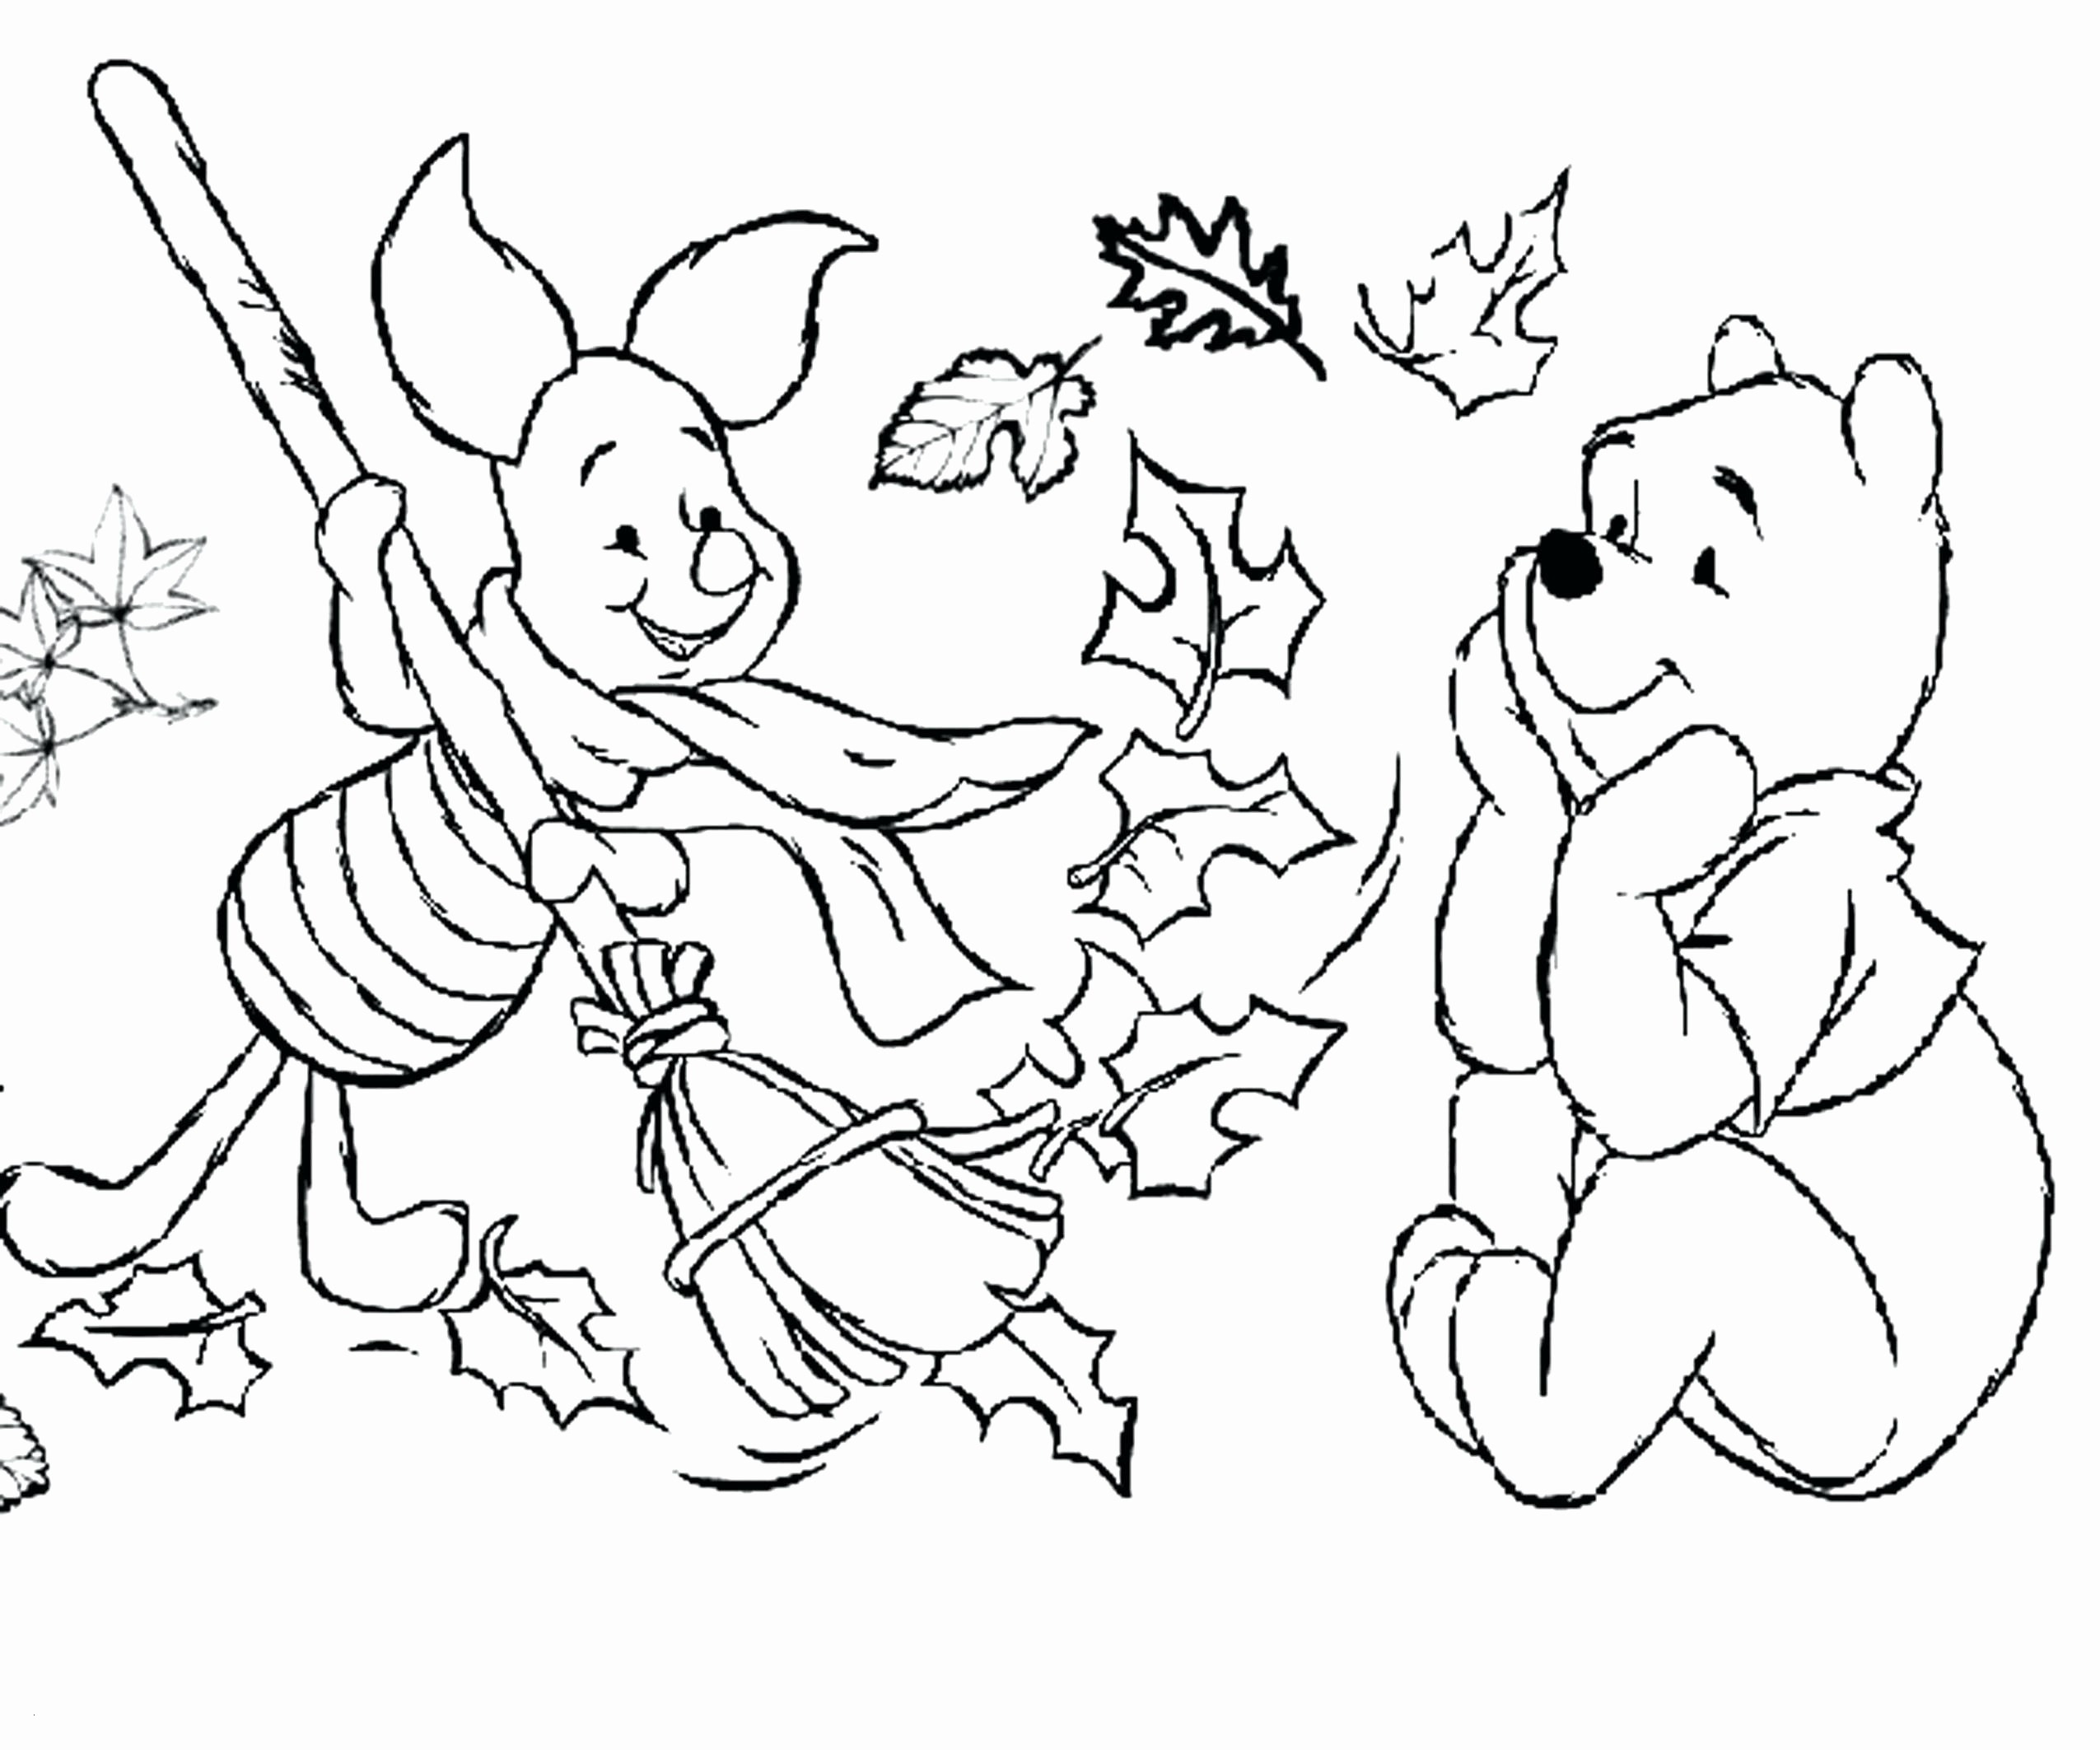 23 Eevee Coloring Pages to Print Download - Coloring Sheets